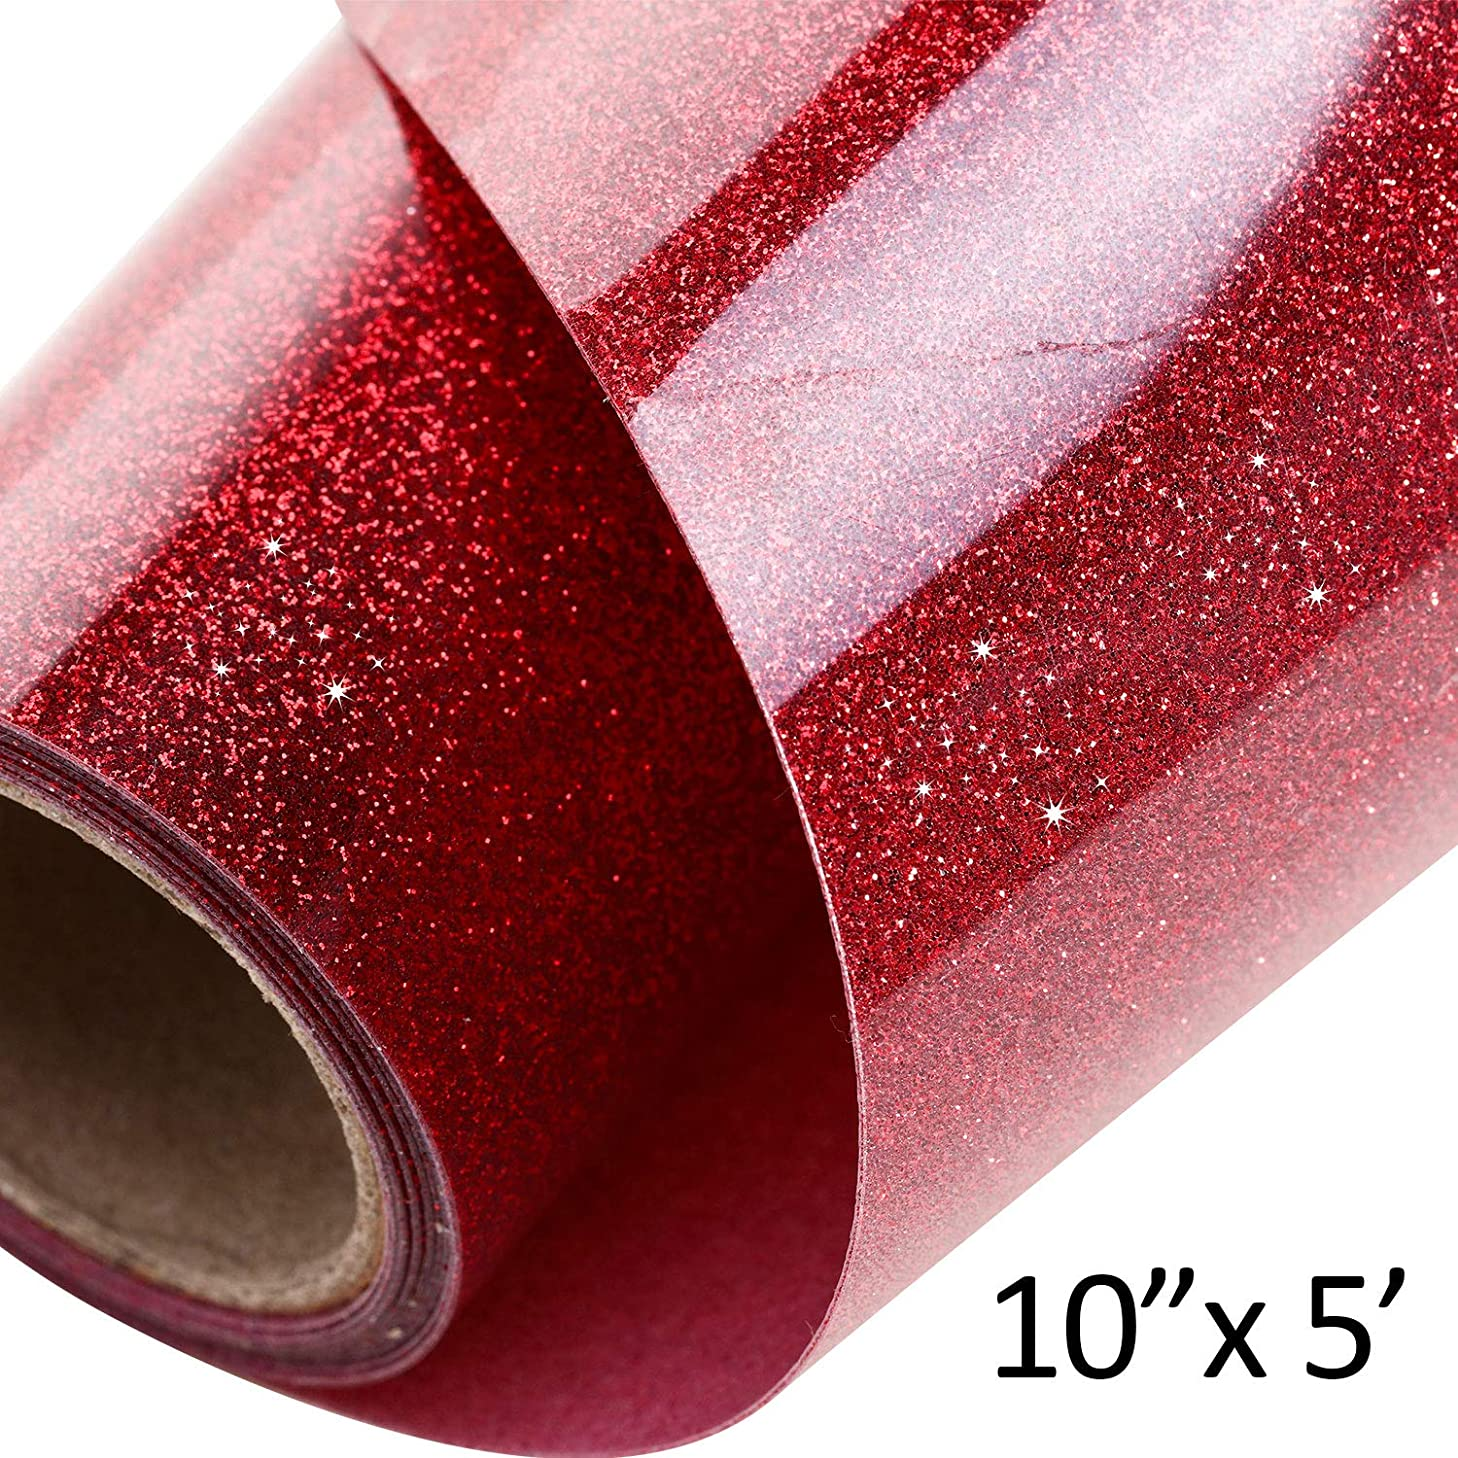 1 Roll Glitter Heat Transfer Vinyl 10 Inch by 5 Feet for T-Shirts, Hats, Clothing, Iron on HTV Compatible with Cricut, Cameo, Heat Press Machines, Sublimation (Red)